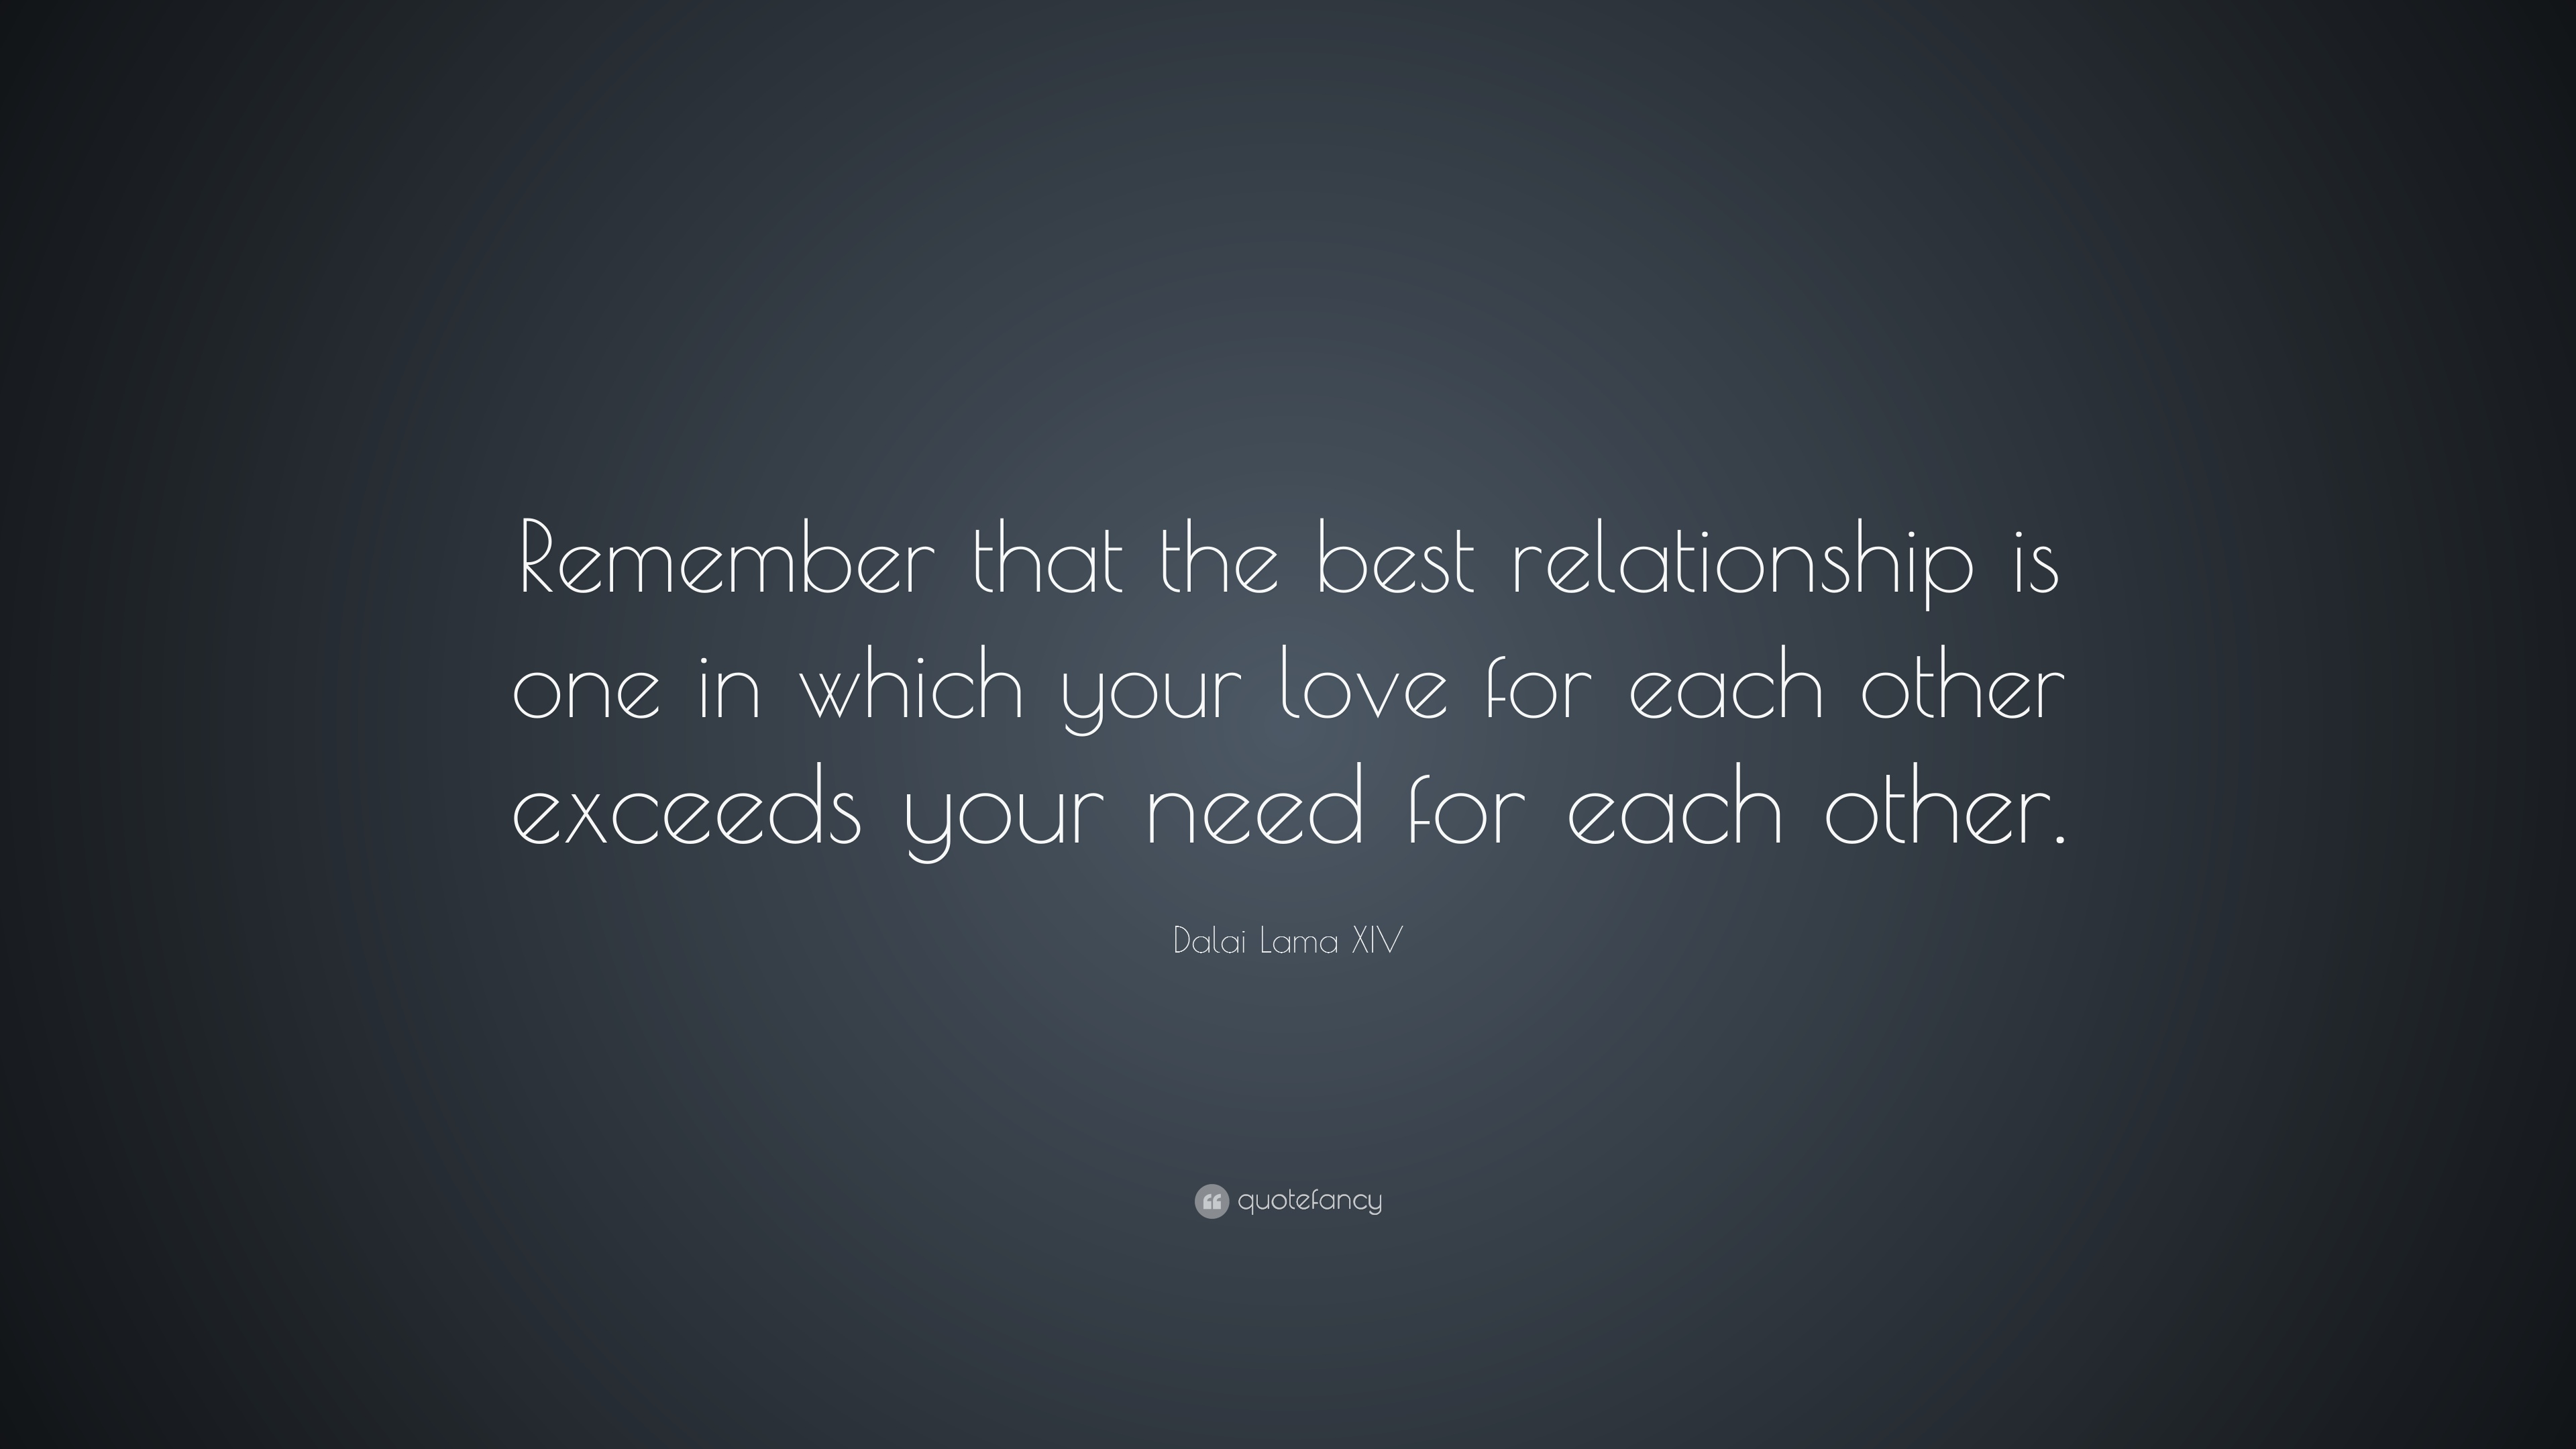 Image of: Love Quotes Dalai Lama Xiv Quote remember That The Best Relationship Is One In Which Your Sayingimagescom Dalai Lama Xiv Quote remember That The Best Relationship Is One In